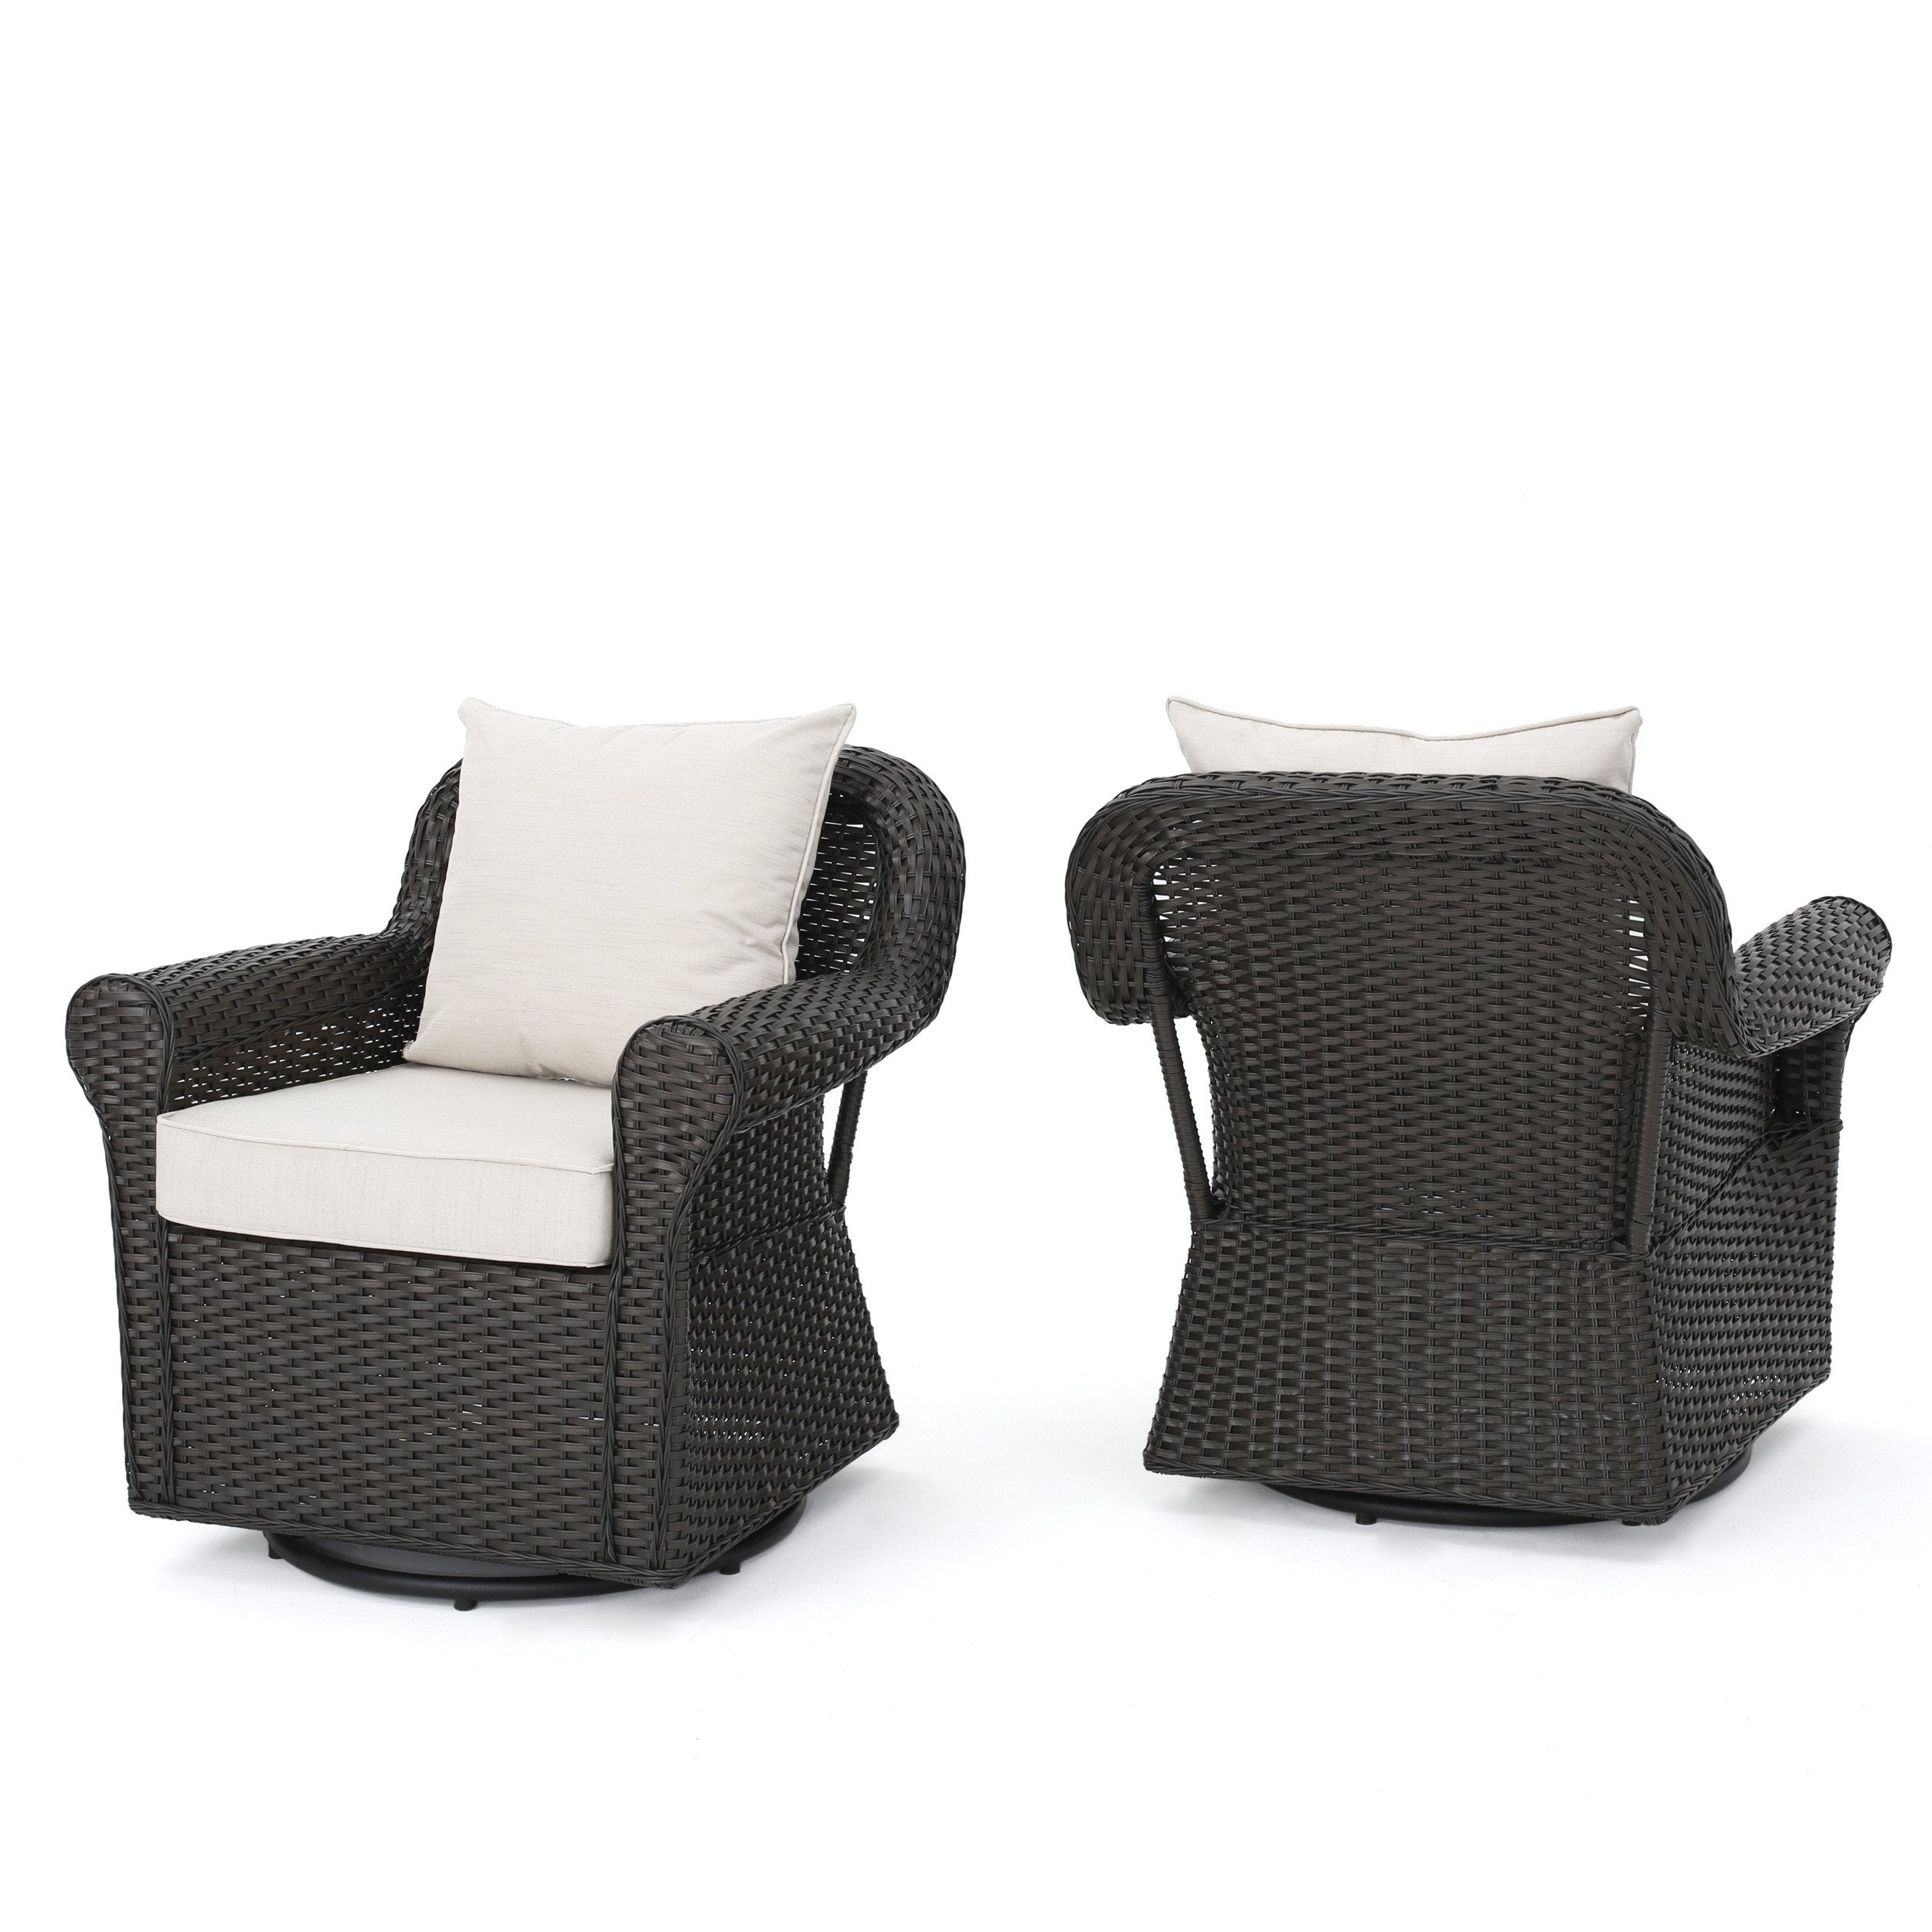 Admiral Outdoor Wicker Swivel Rocking Chair wWater Resistant Cushions